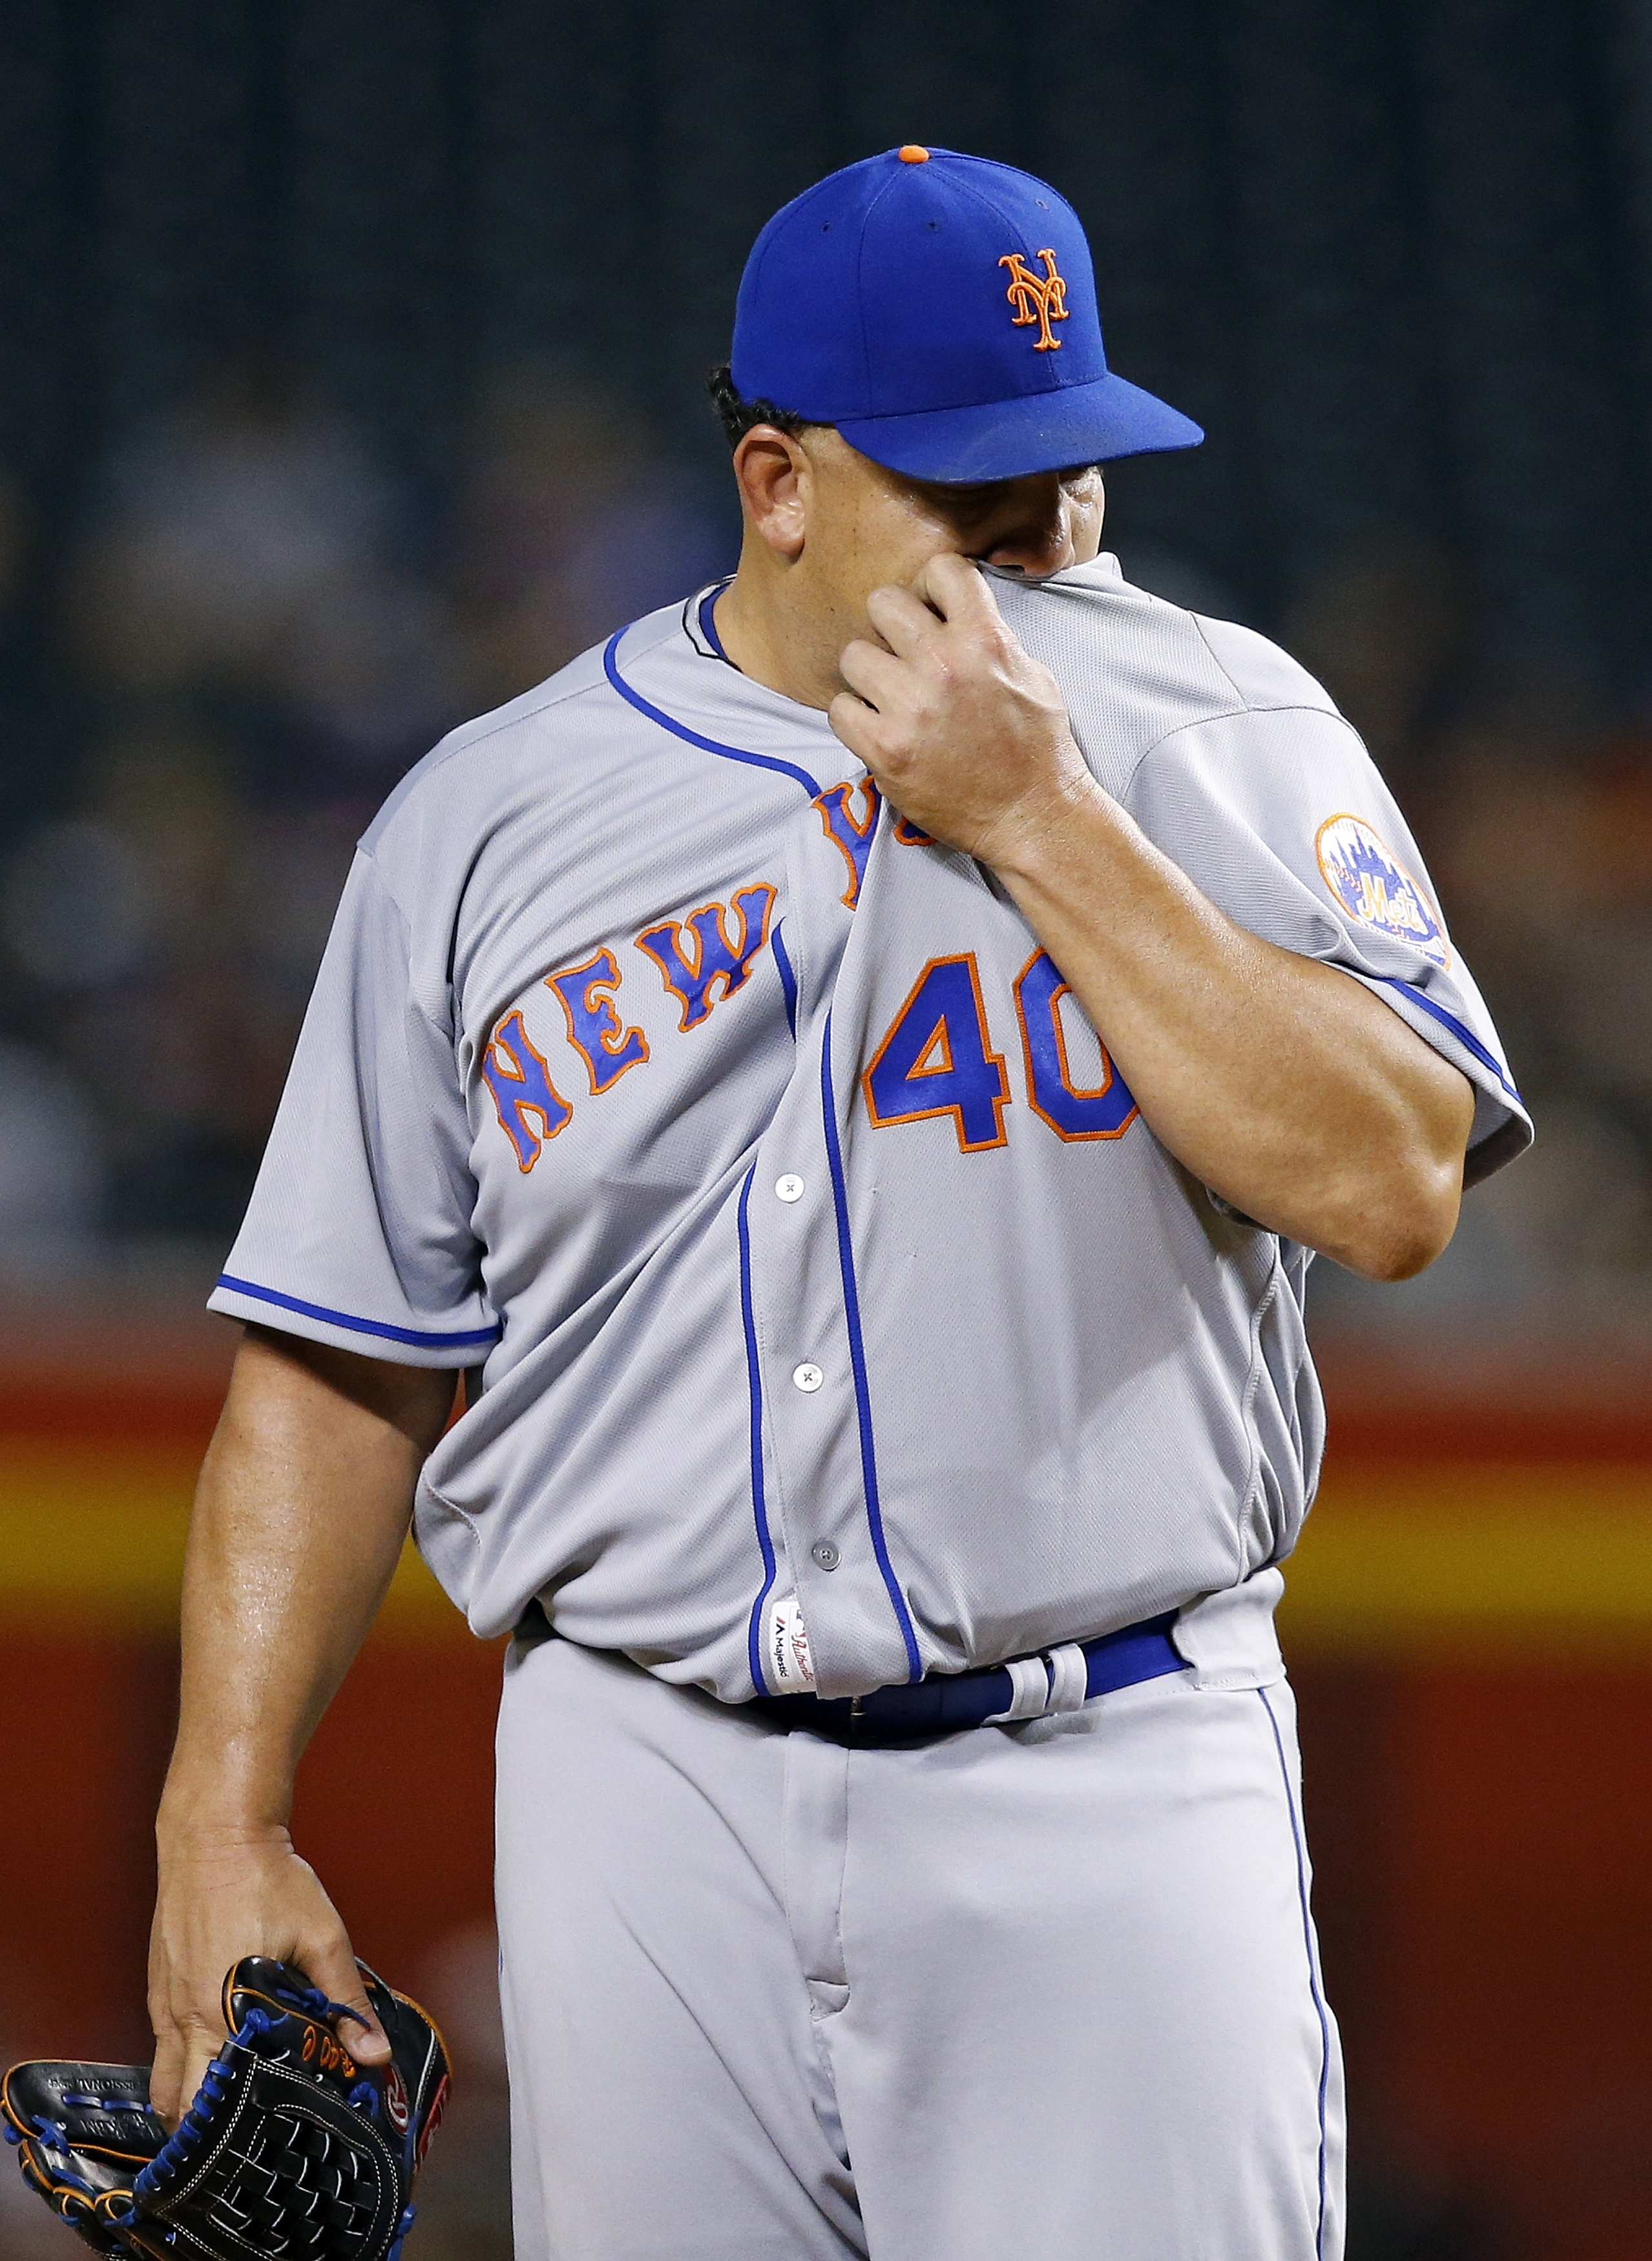 New York Mets' Bartolo Colon pauses on the mound on his way to giving up three run against the Arizona Diamondbacks during the first inning of a baseball game, Monday, Aug. 15, 2016, in Phoenix. (AP Photo/Ross D. Franklin)